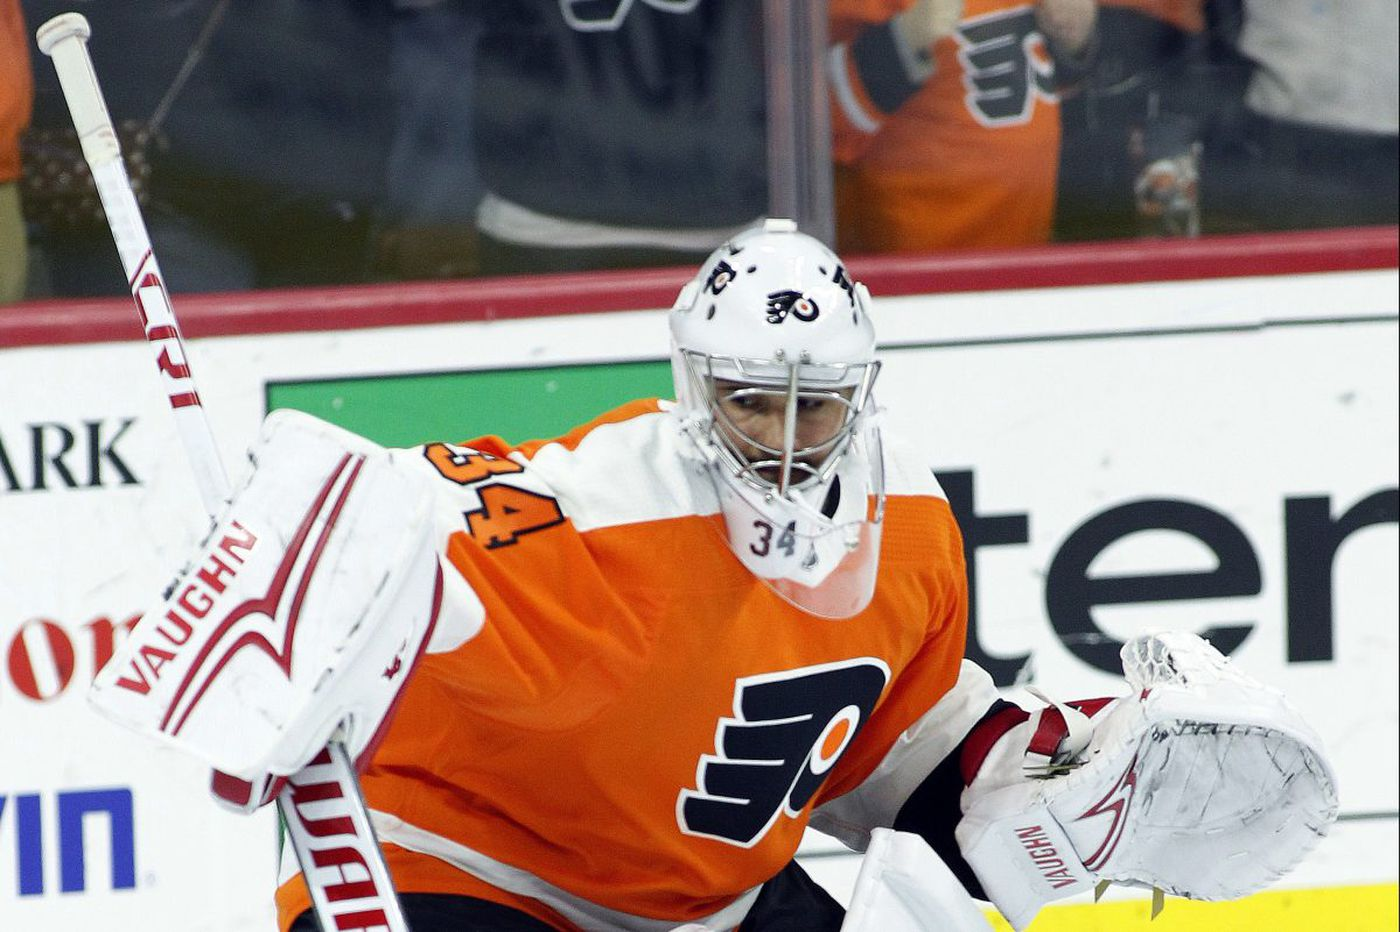 new products 790c4 6b4d6 For Flyers goalie Petr Mrazek, a 'new chapter' begins